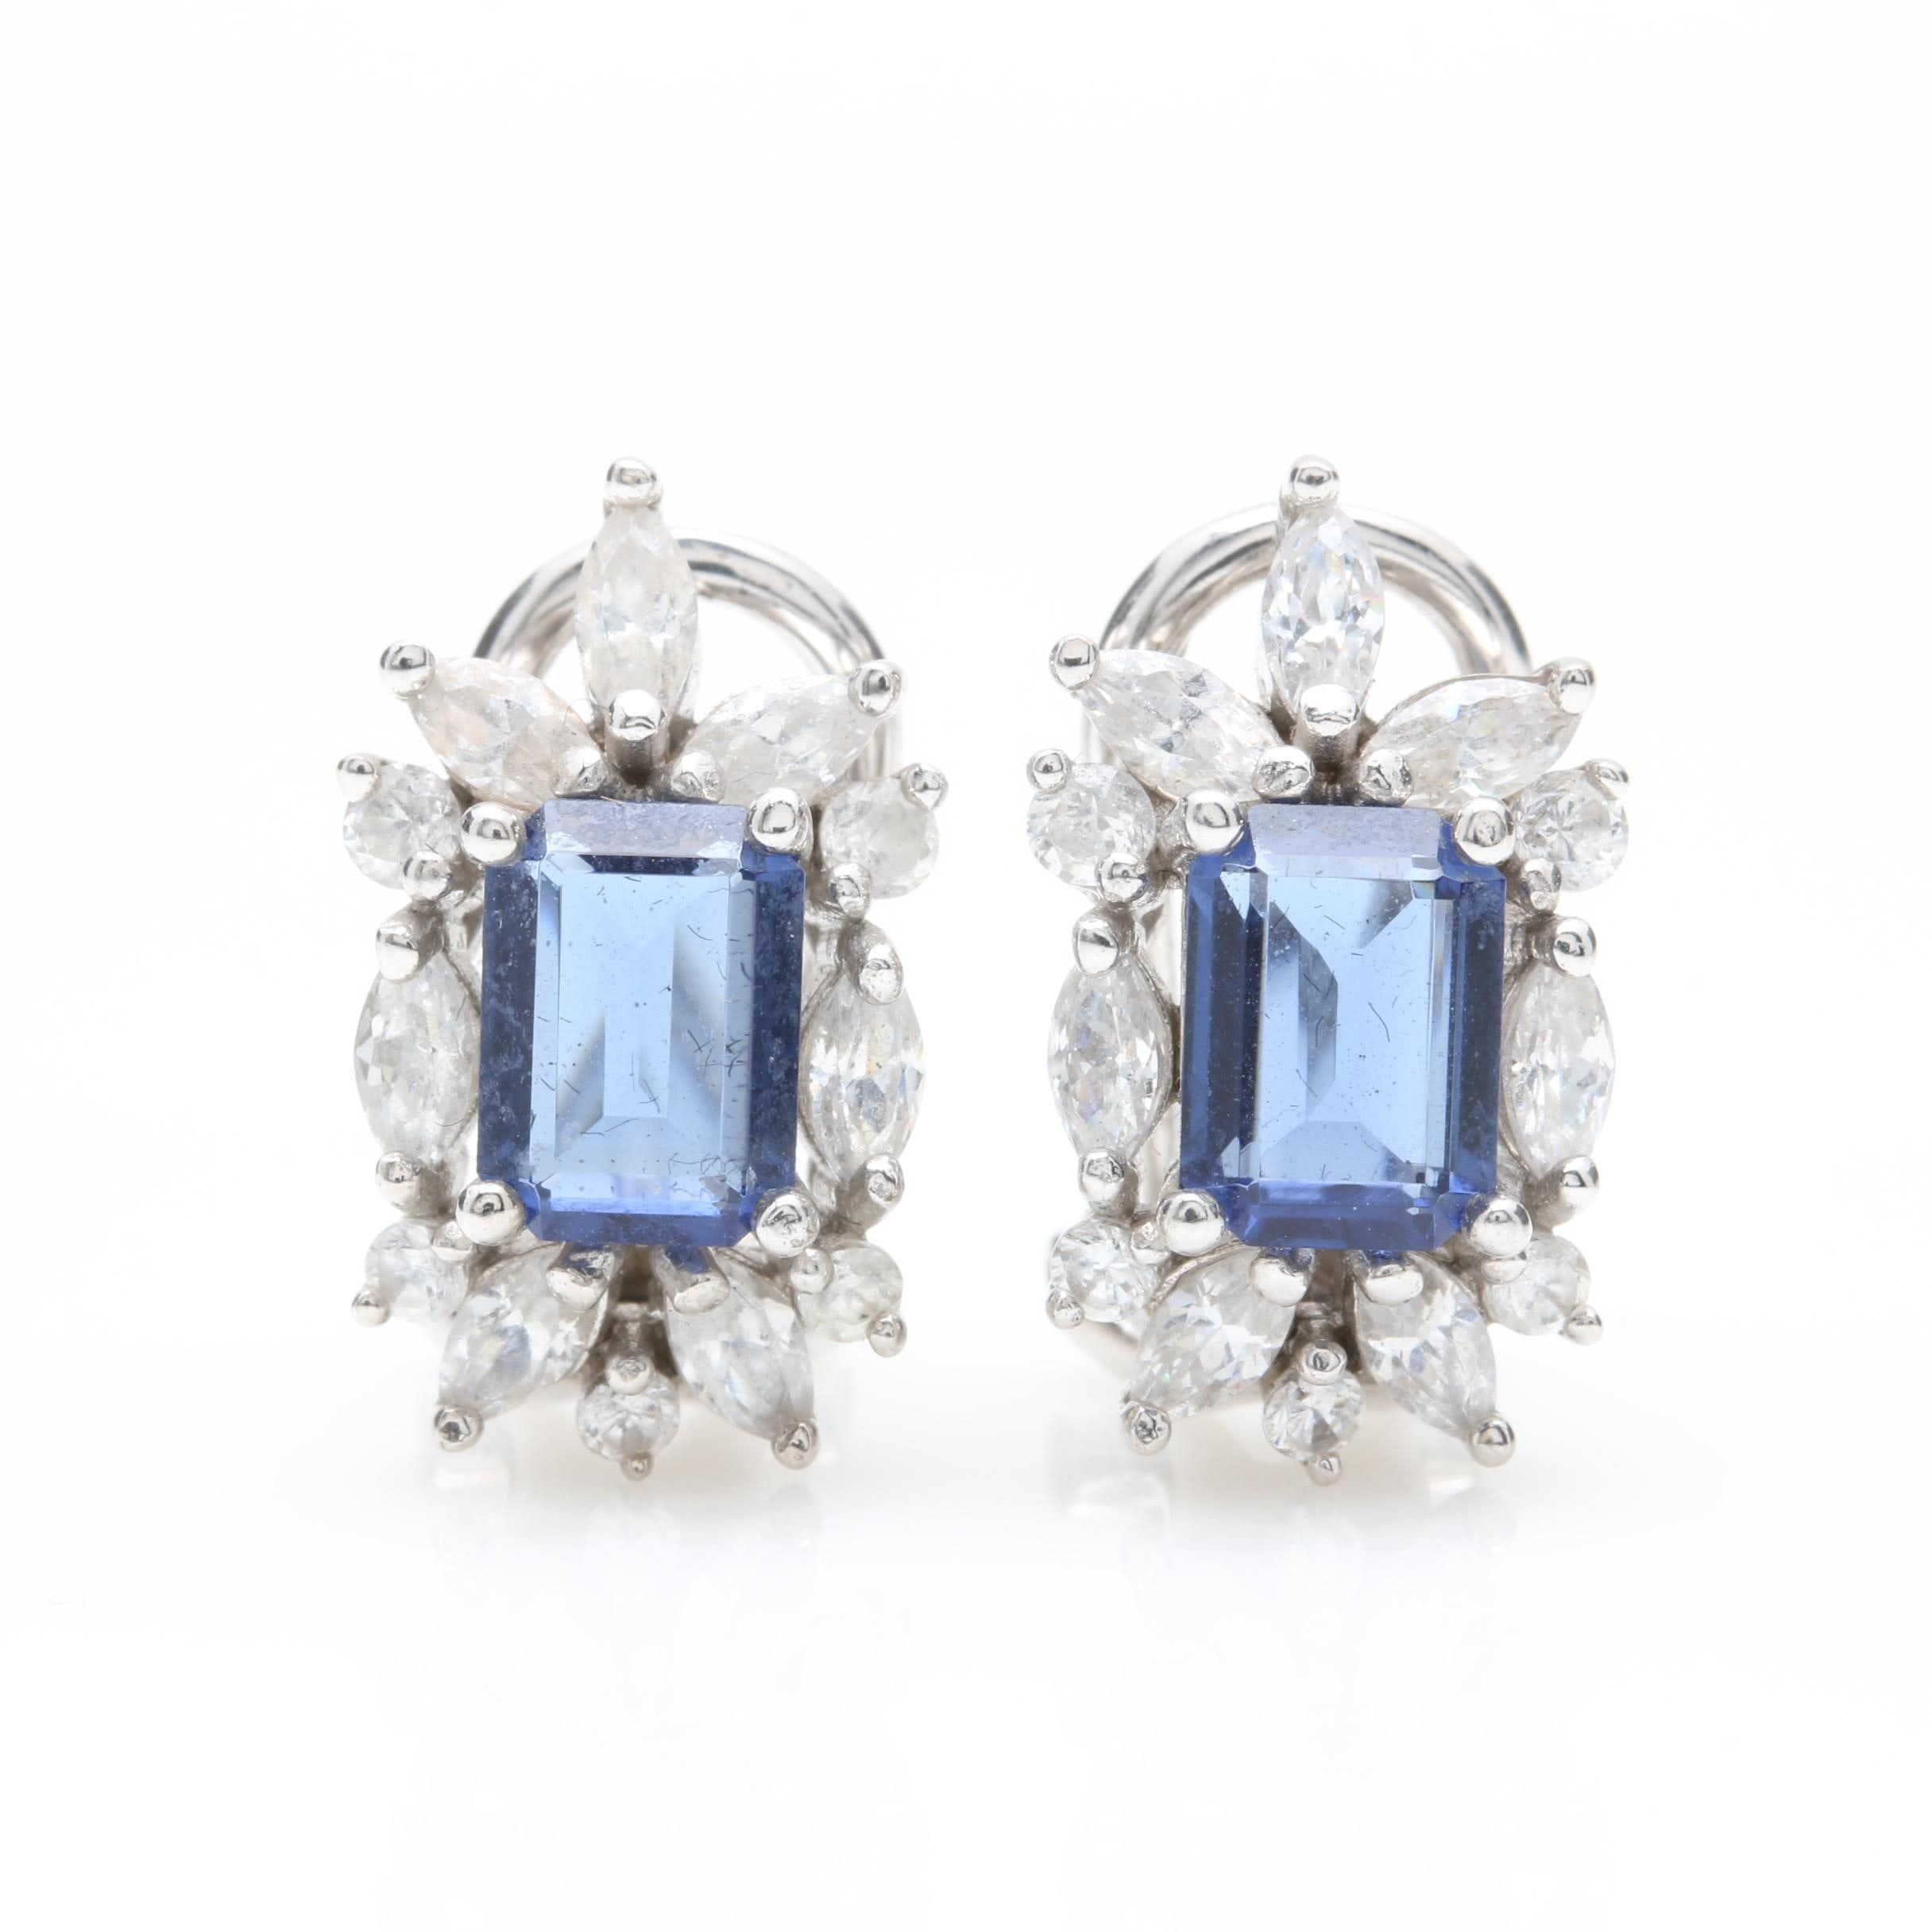 18K White Gold Blue Glass and Cubic Zirconia Earrings